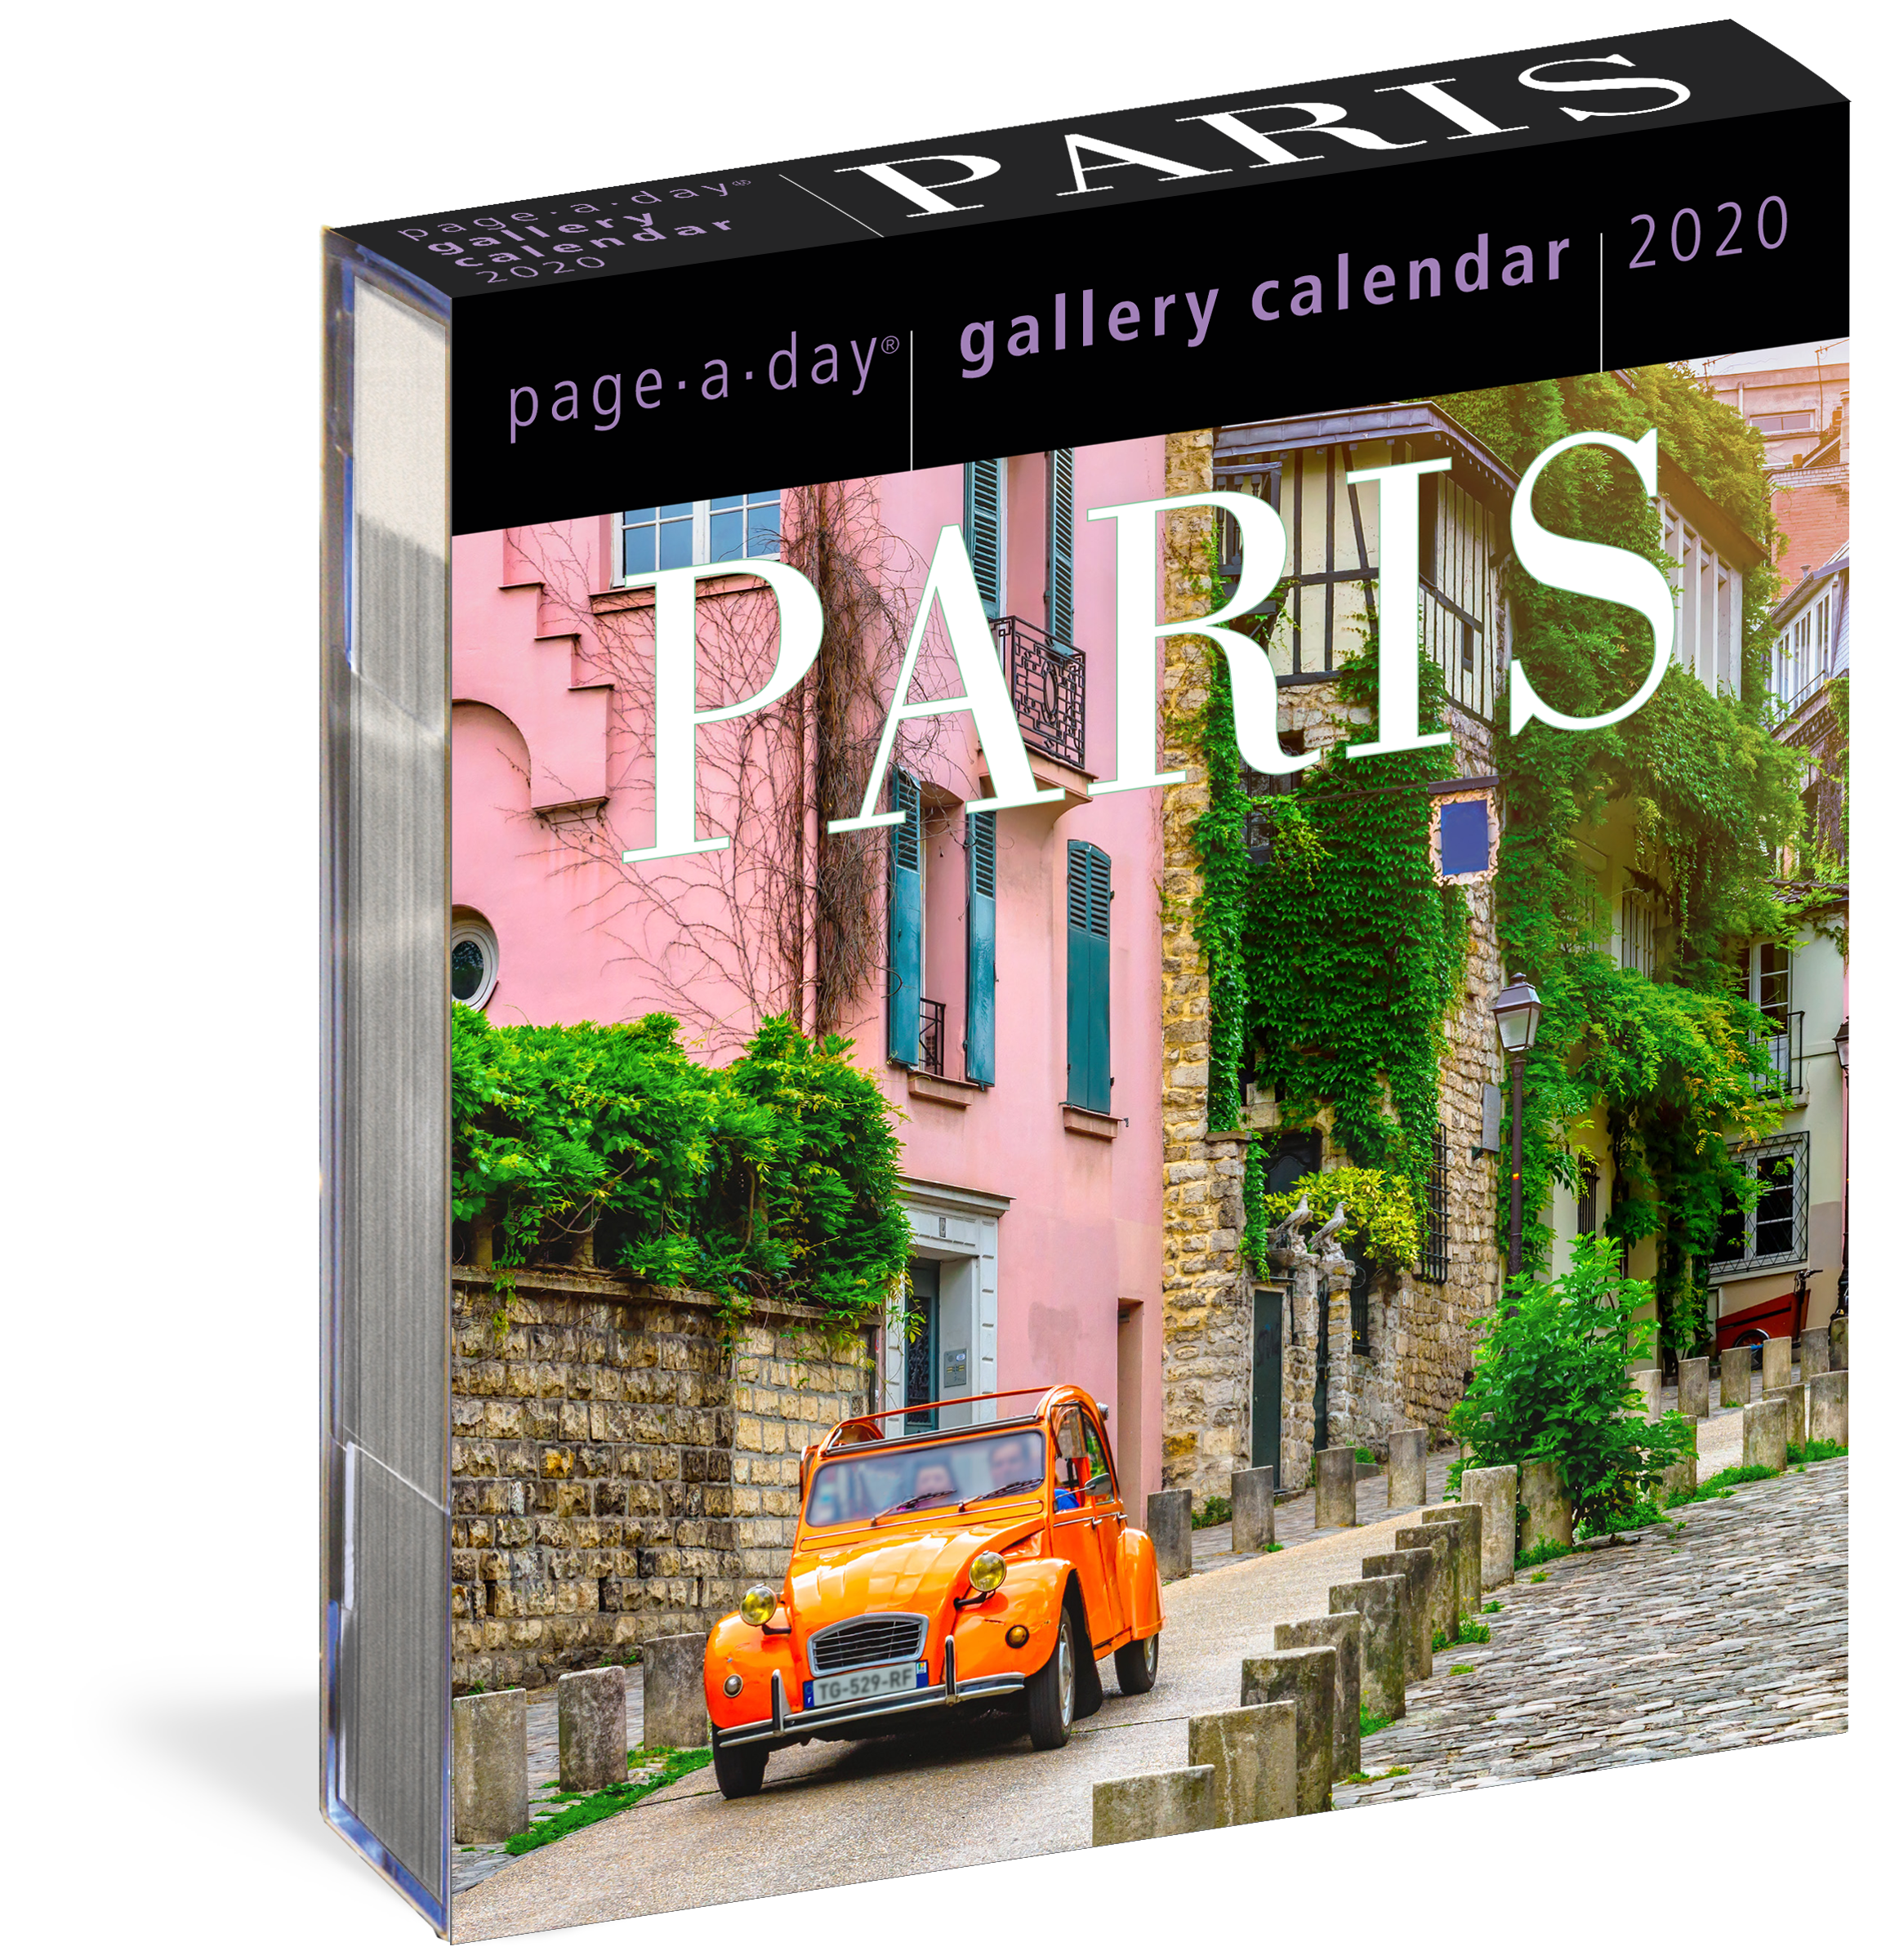 image about Page a Day Calendar identify Paris Web page-A-Working day Gallery Calendar 2020 - Workman Submitting